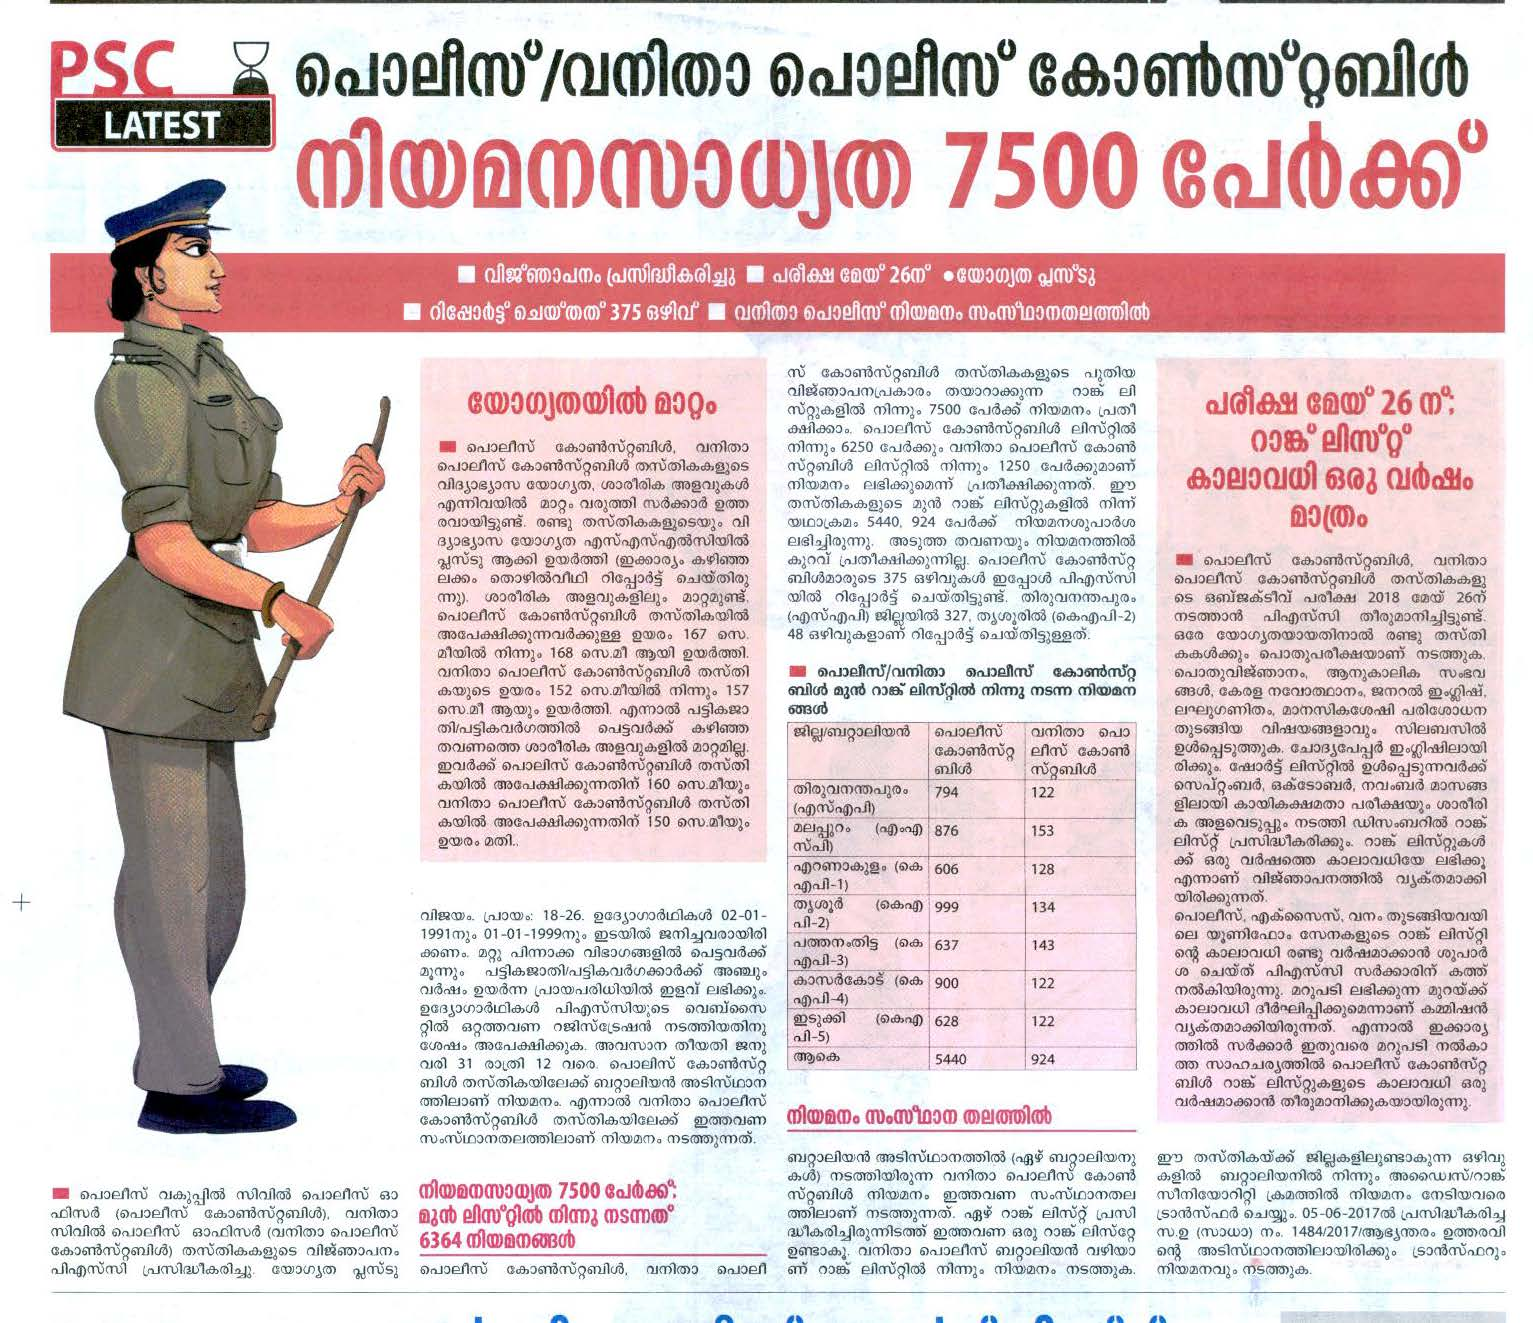 Kerala PSC Civil Police Officer Result 2019